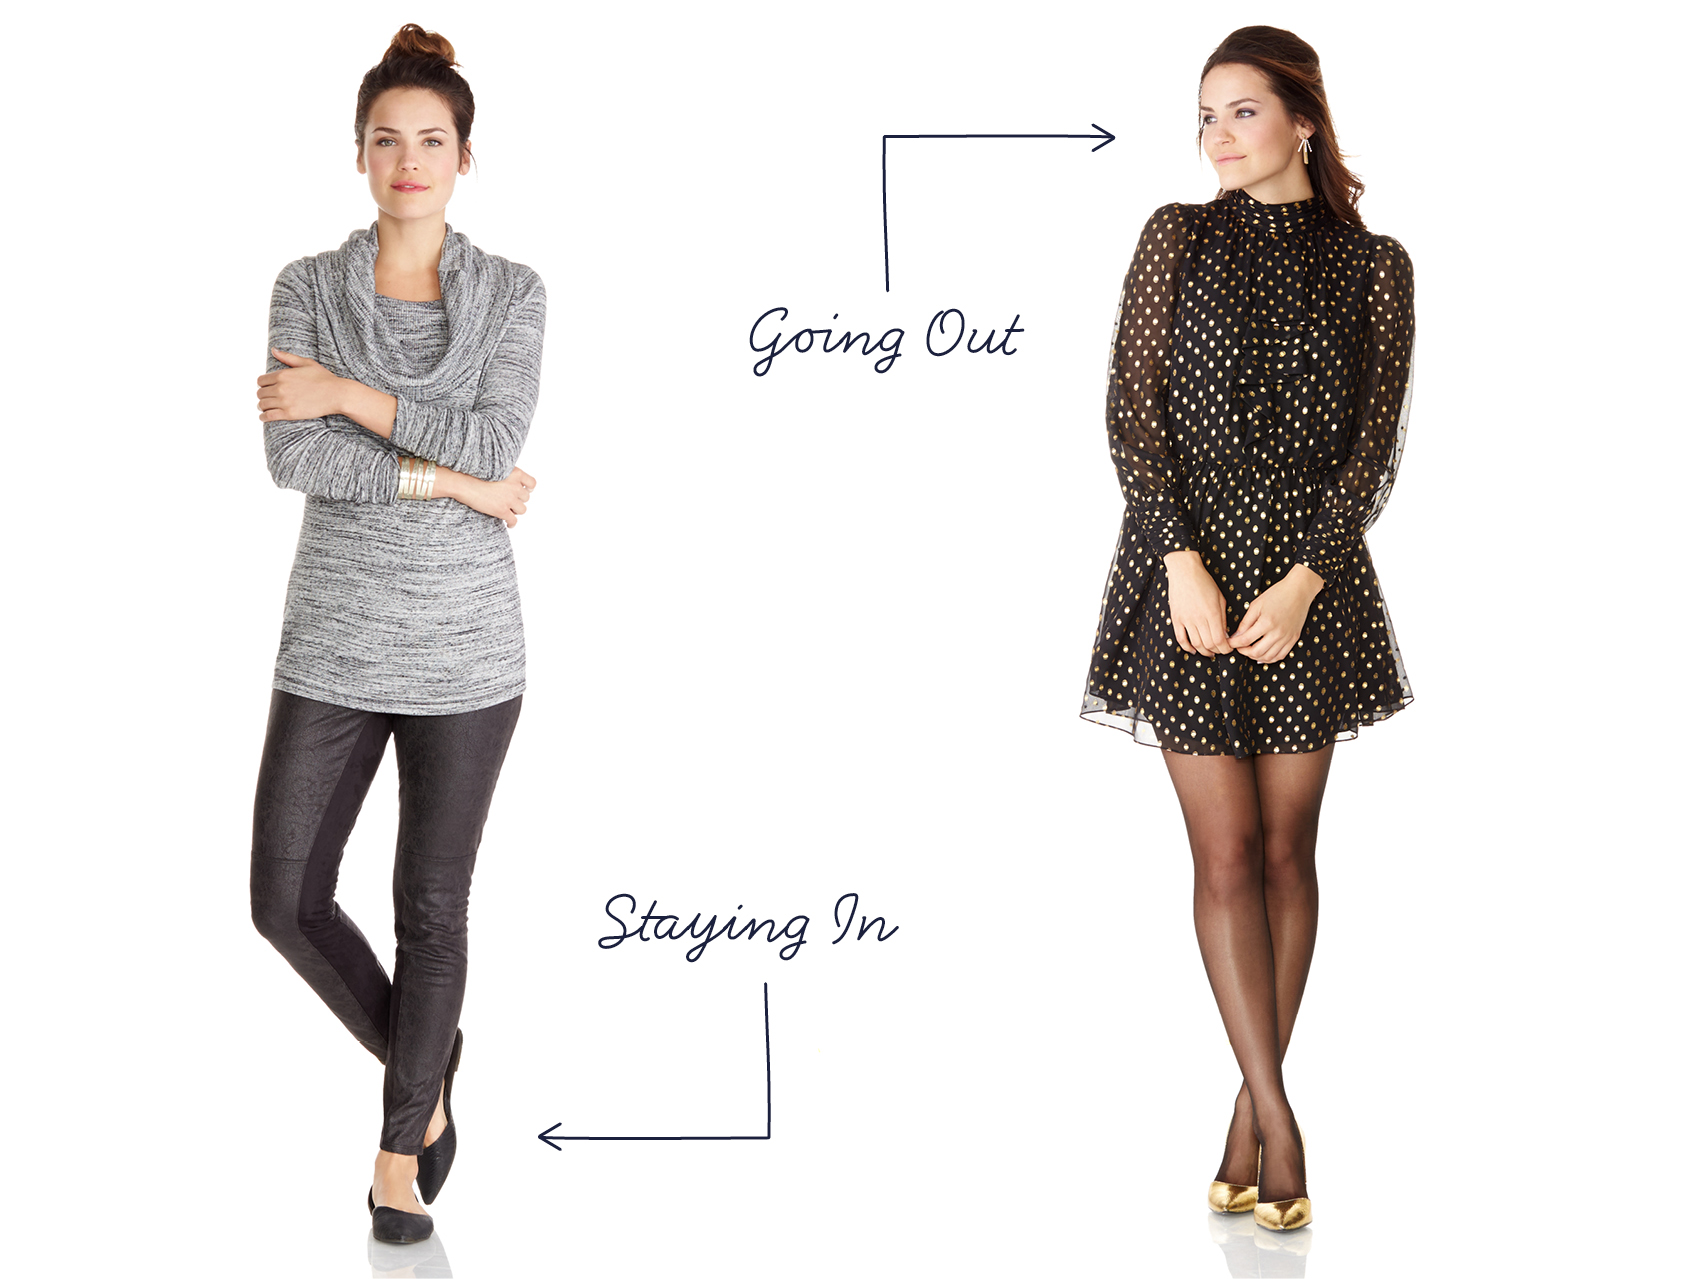 d1f51955f36 Here s our take on New Years Eve outfits—whether you re going out or  staying in!